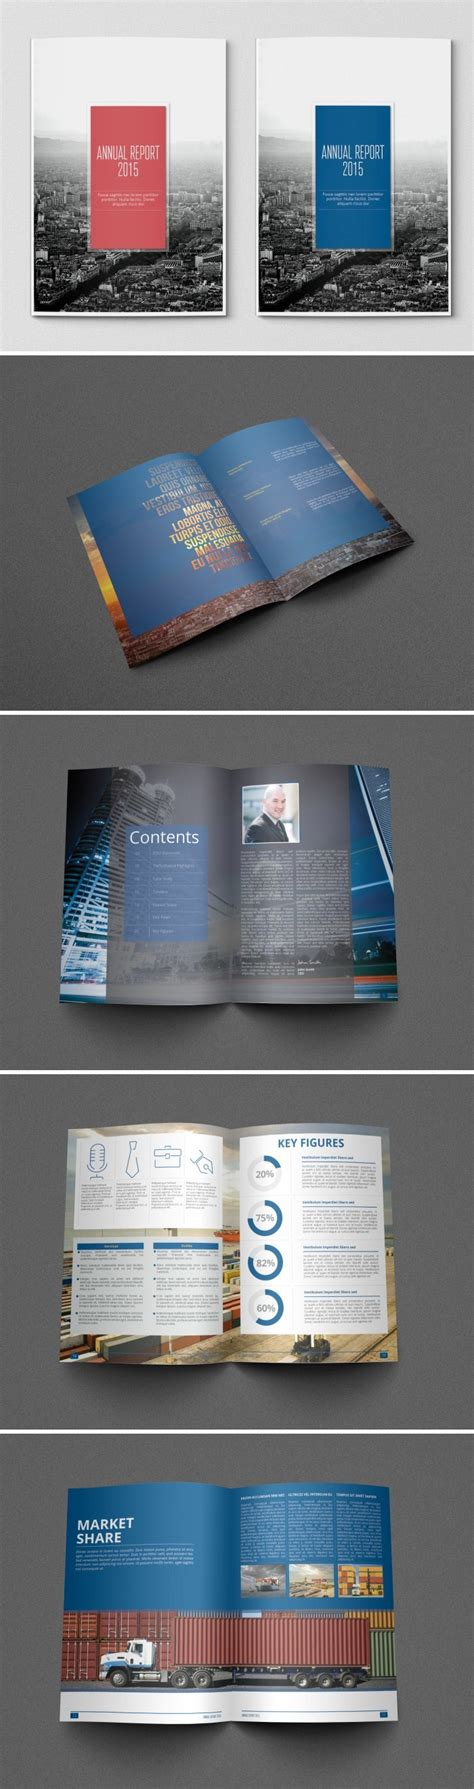 simple annual report template a showcase of annual report brochure designs to check out